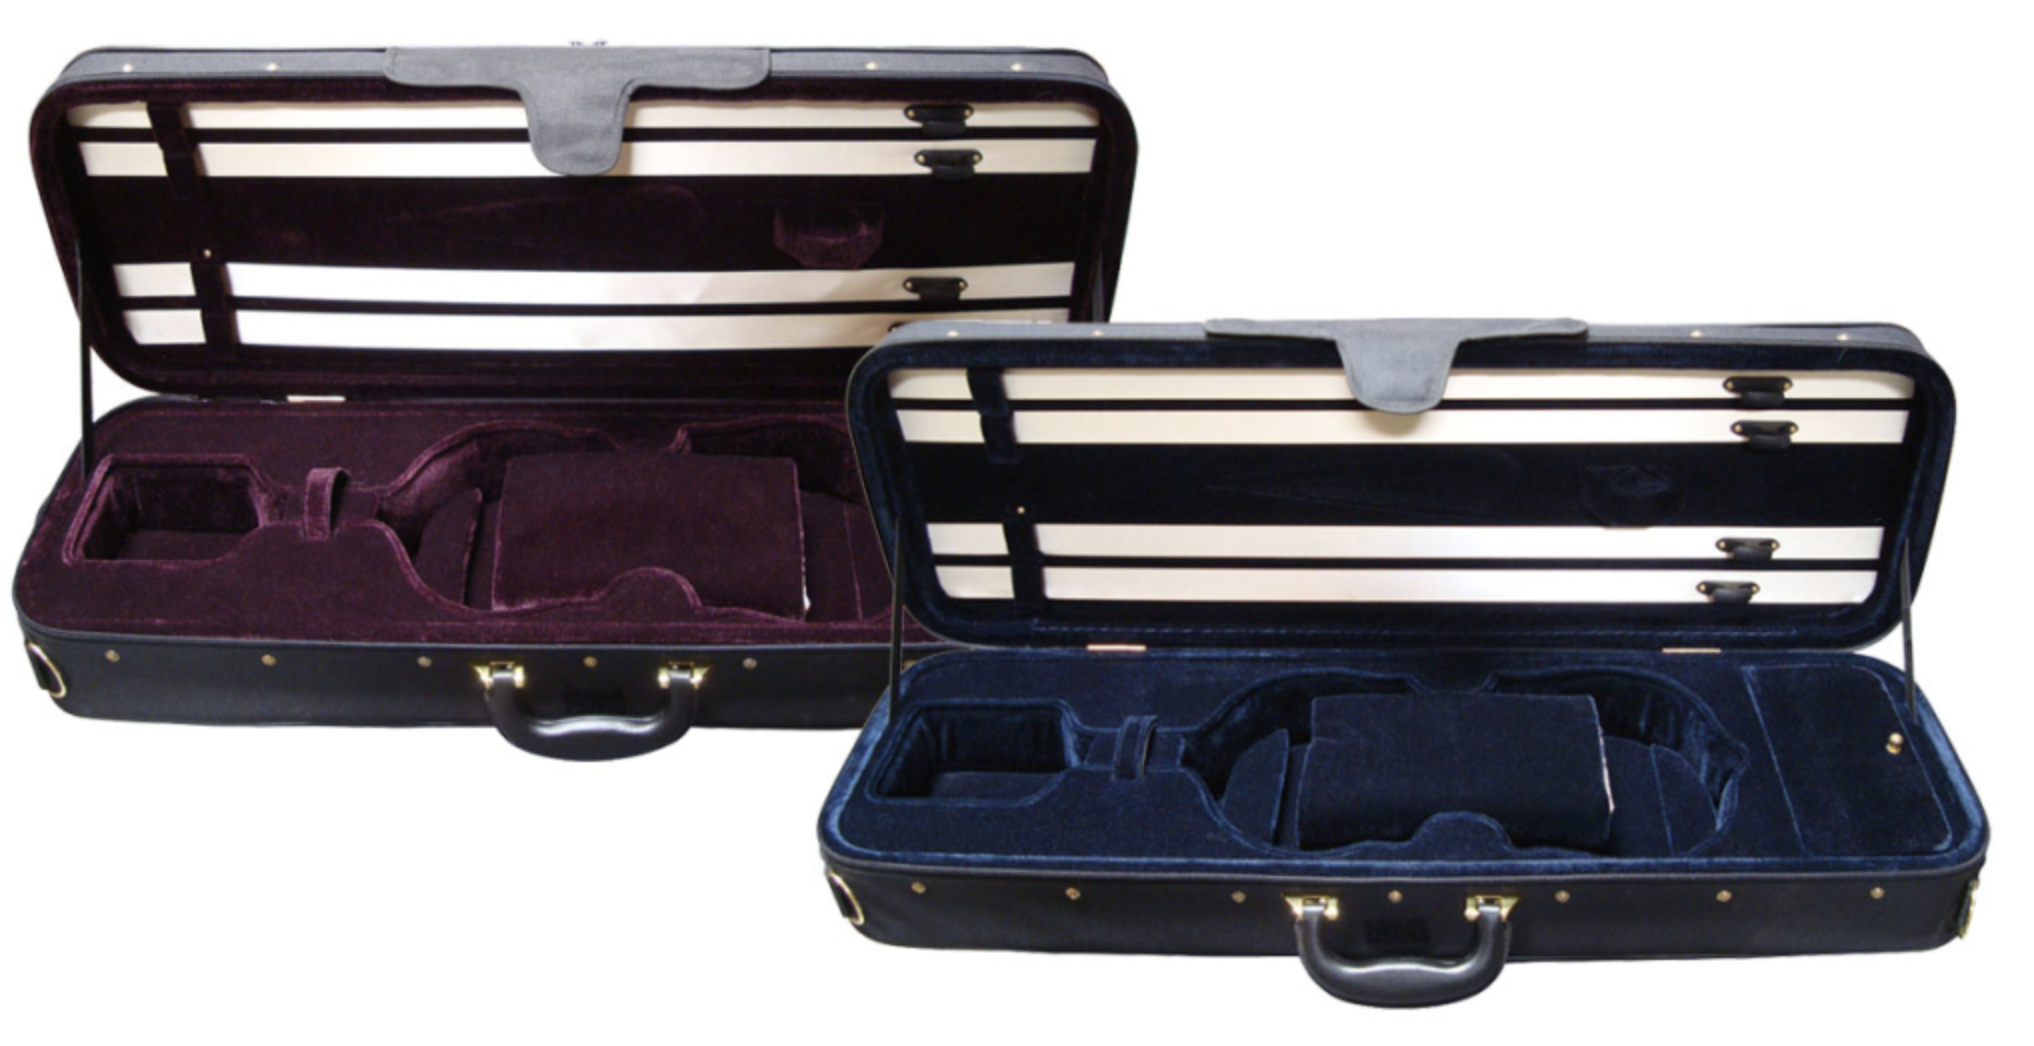 Angeli 4/4 student oblong violin case, Red int. / Black ext.